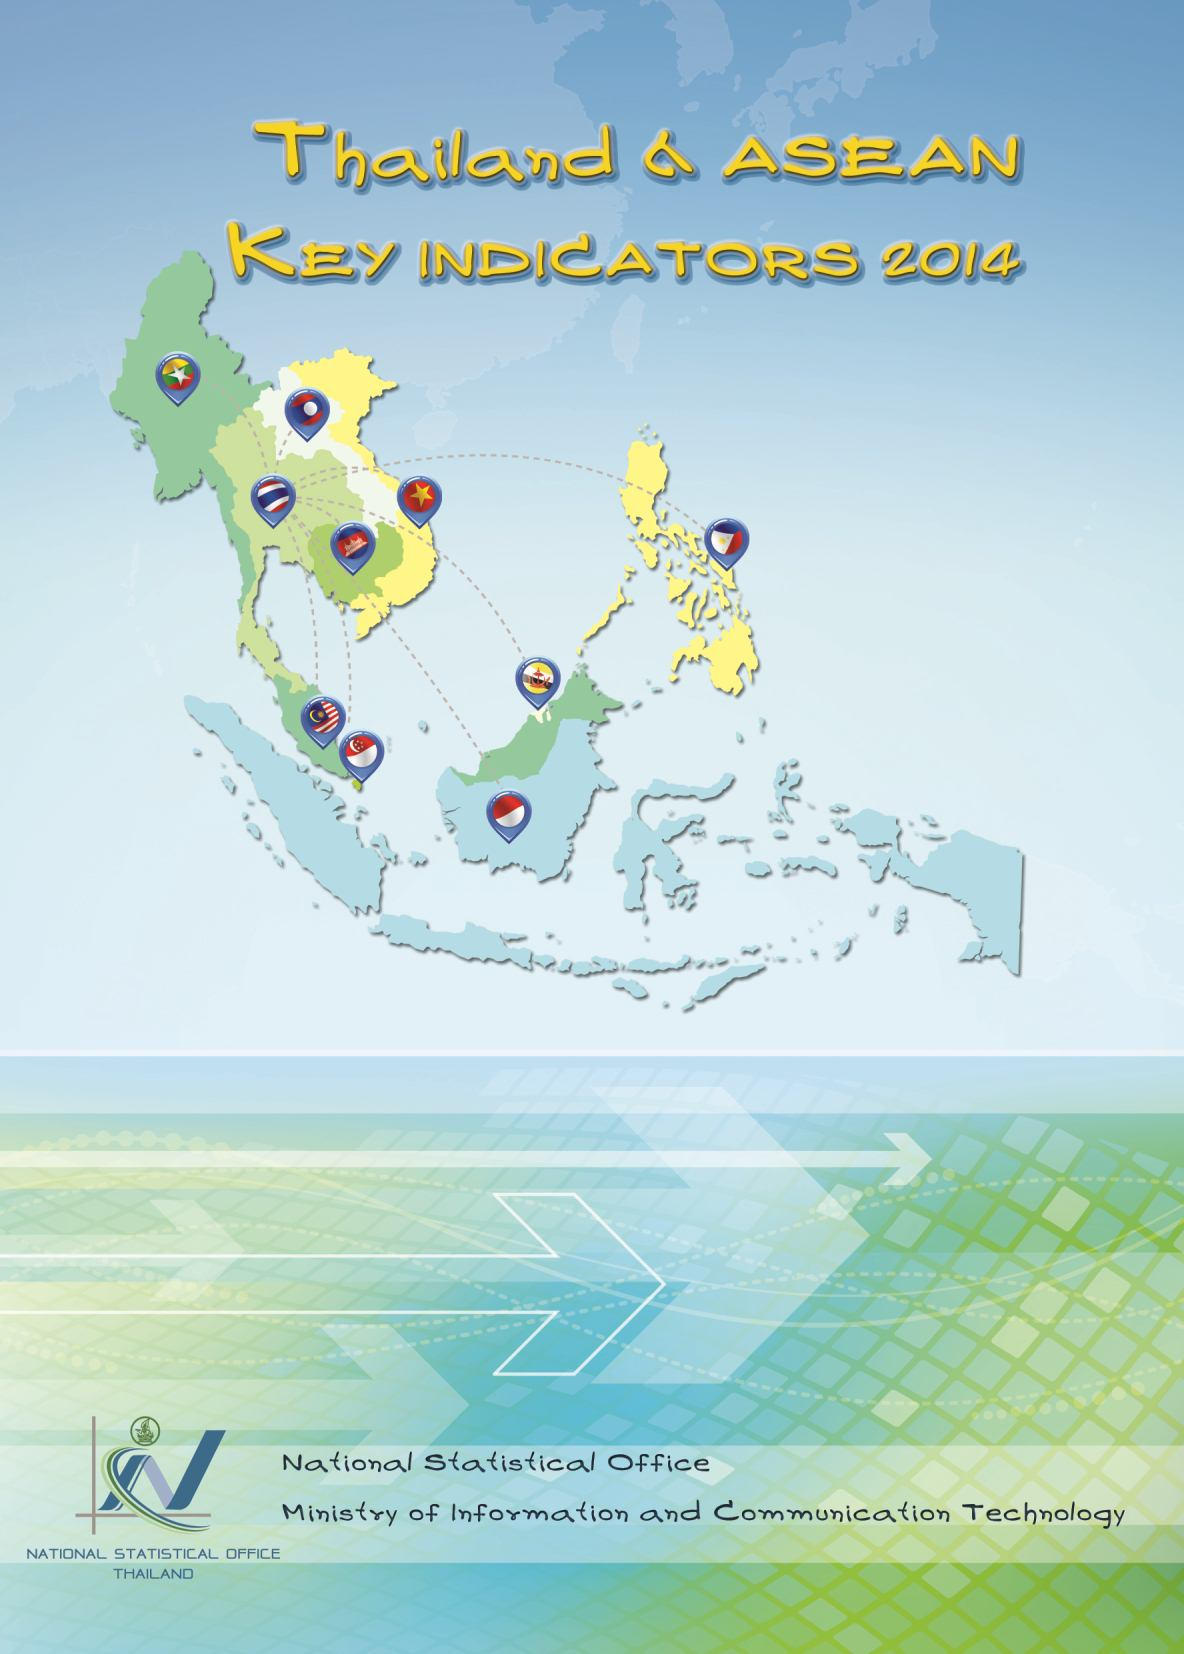 Thailand & ASEAN KEY INDICATORS 2014